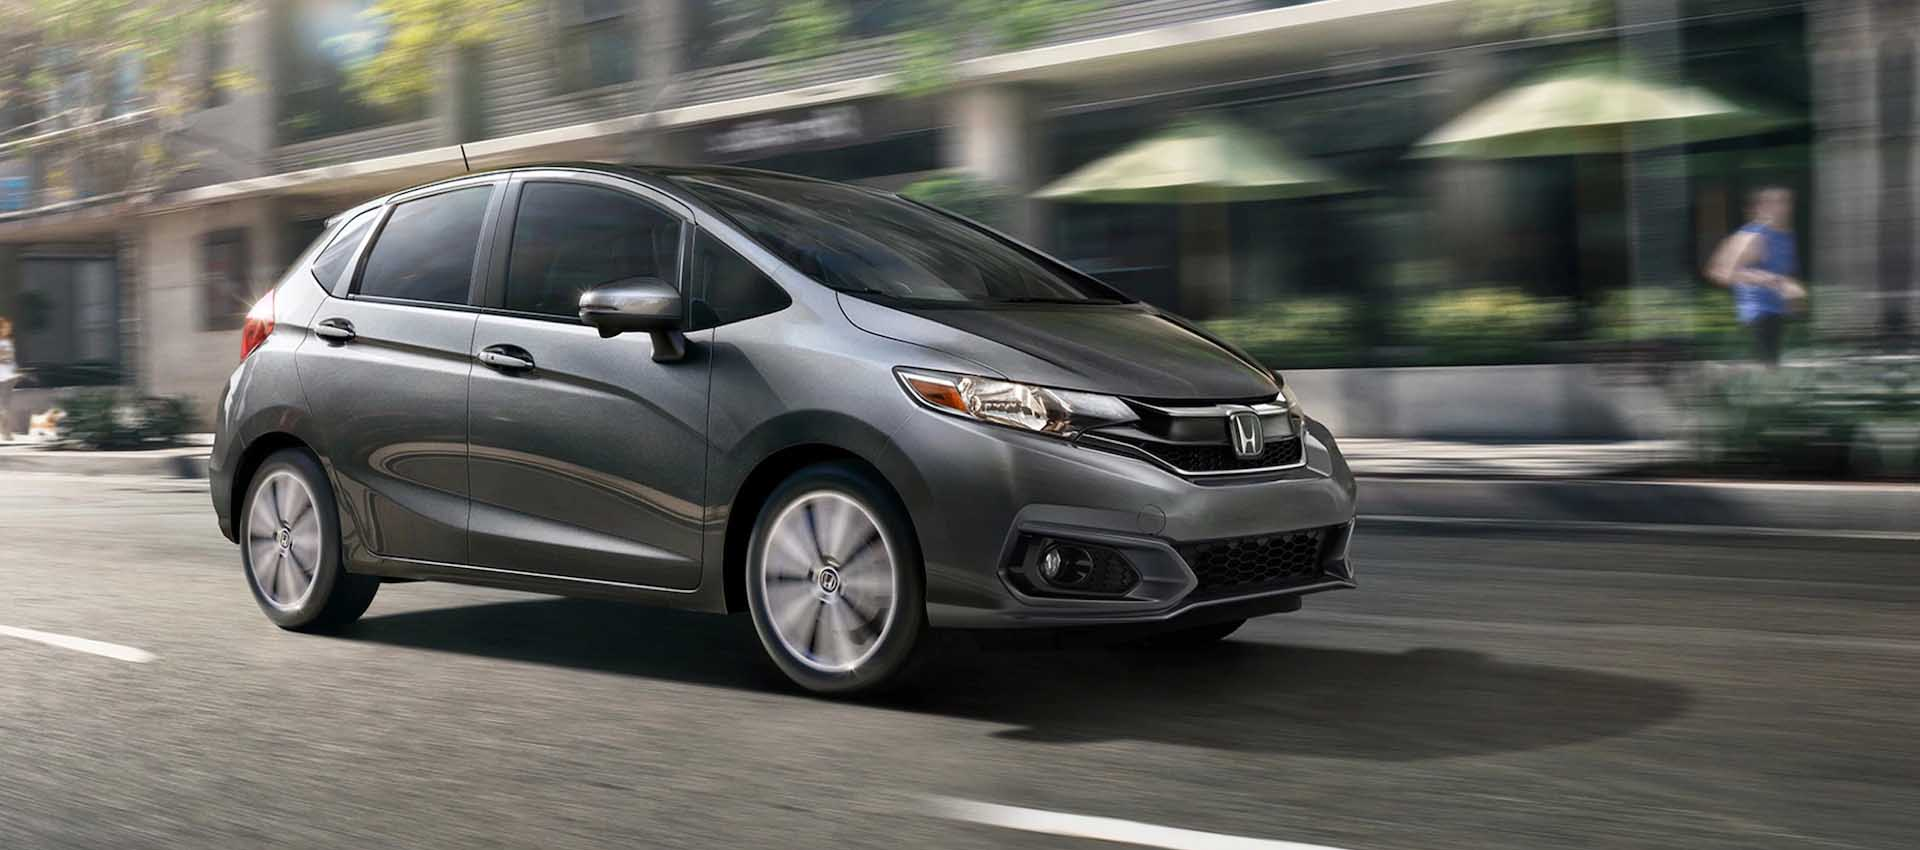 2020 honda fit at DCH Paramus Honda